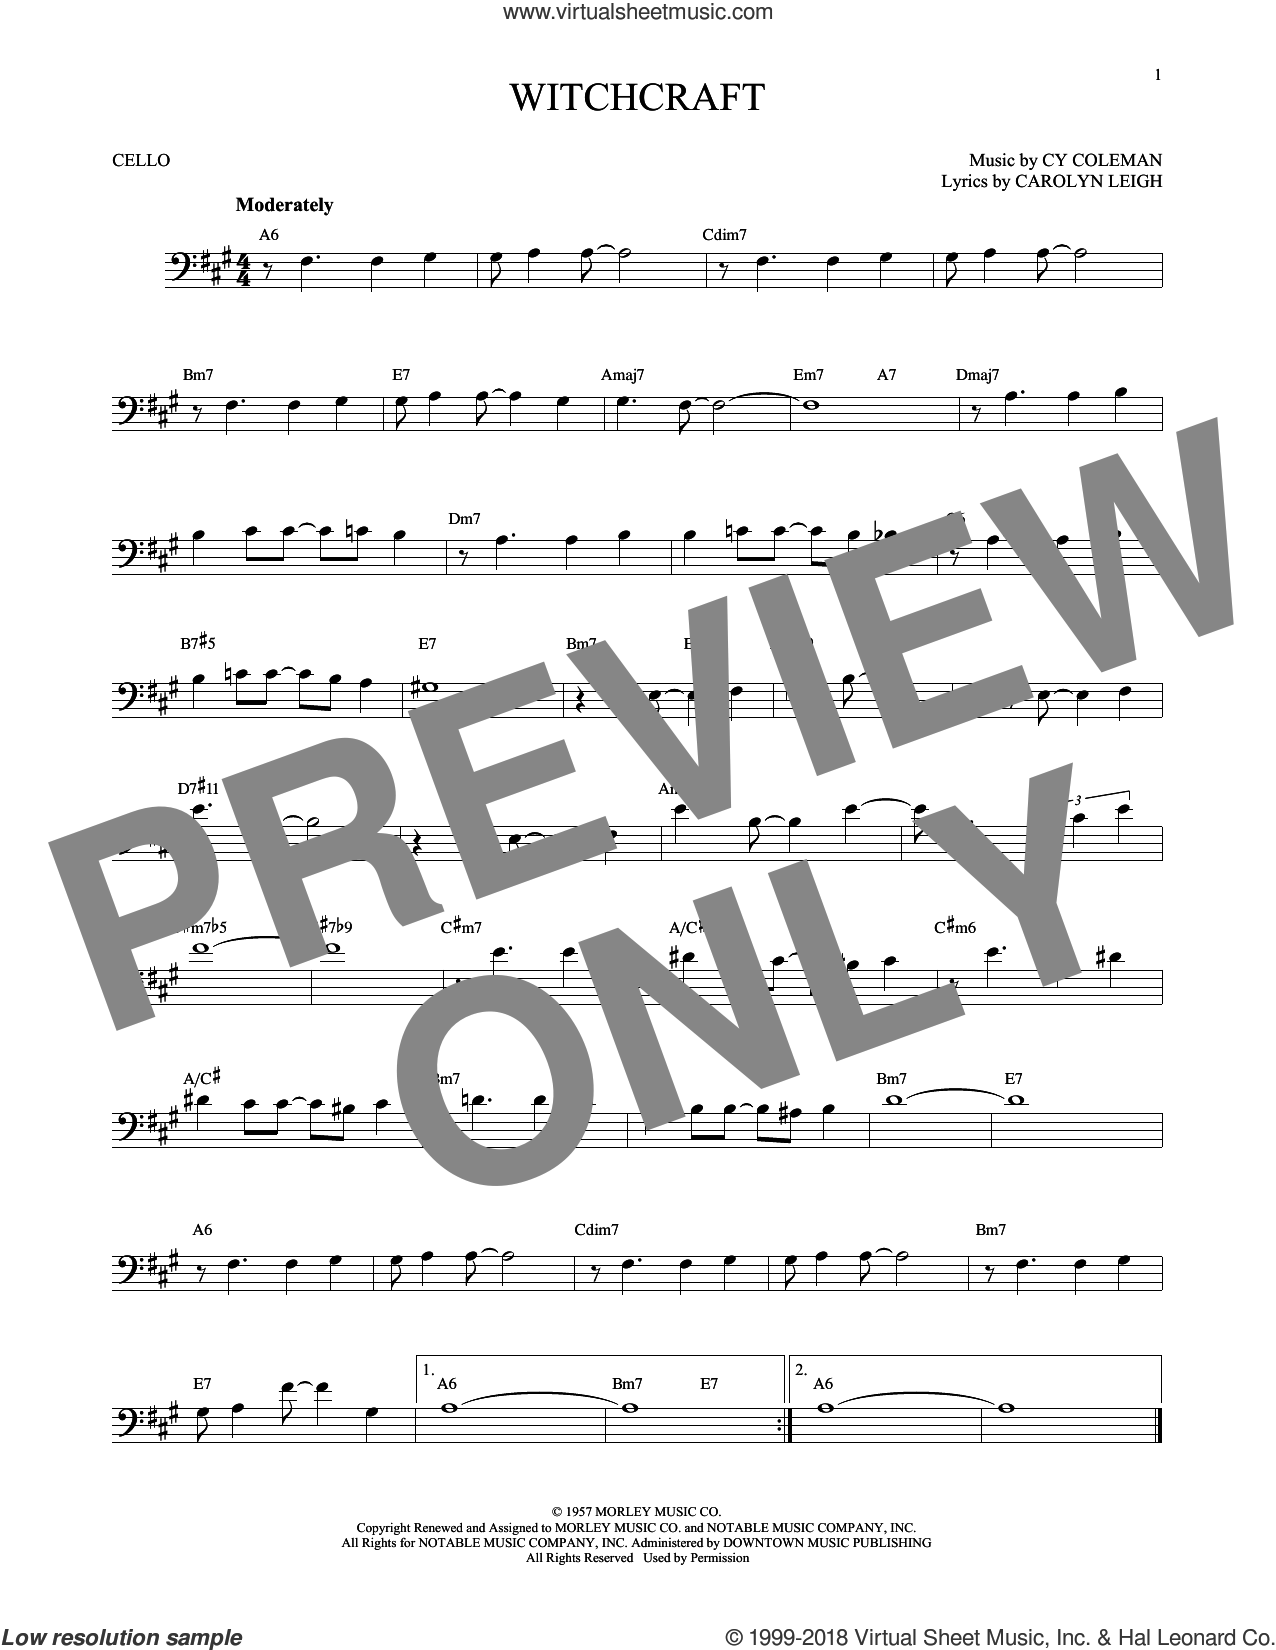 Witchcraft sheet music for cello solo by Cy Coleman and Carolyn Leigh, intermediate skill level